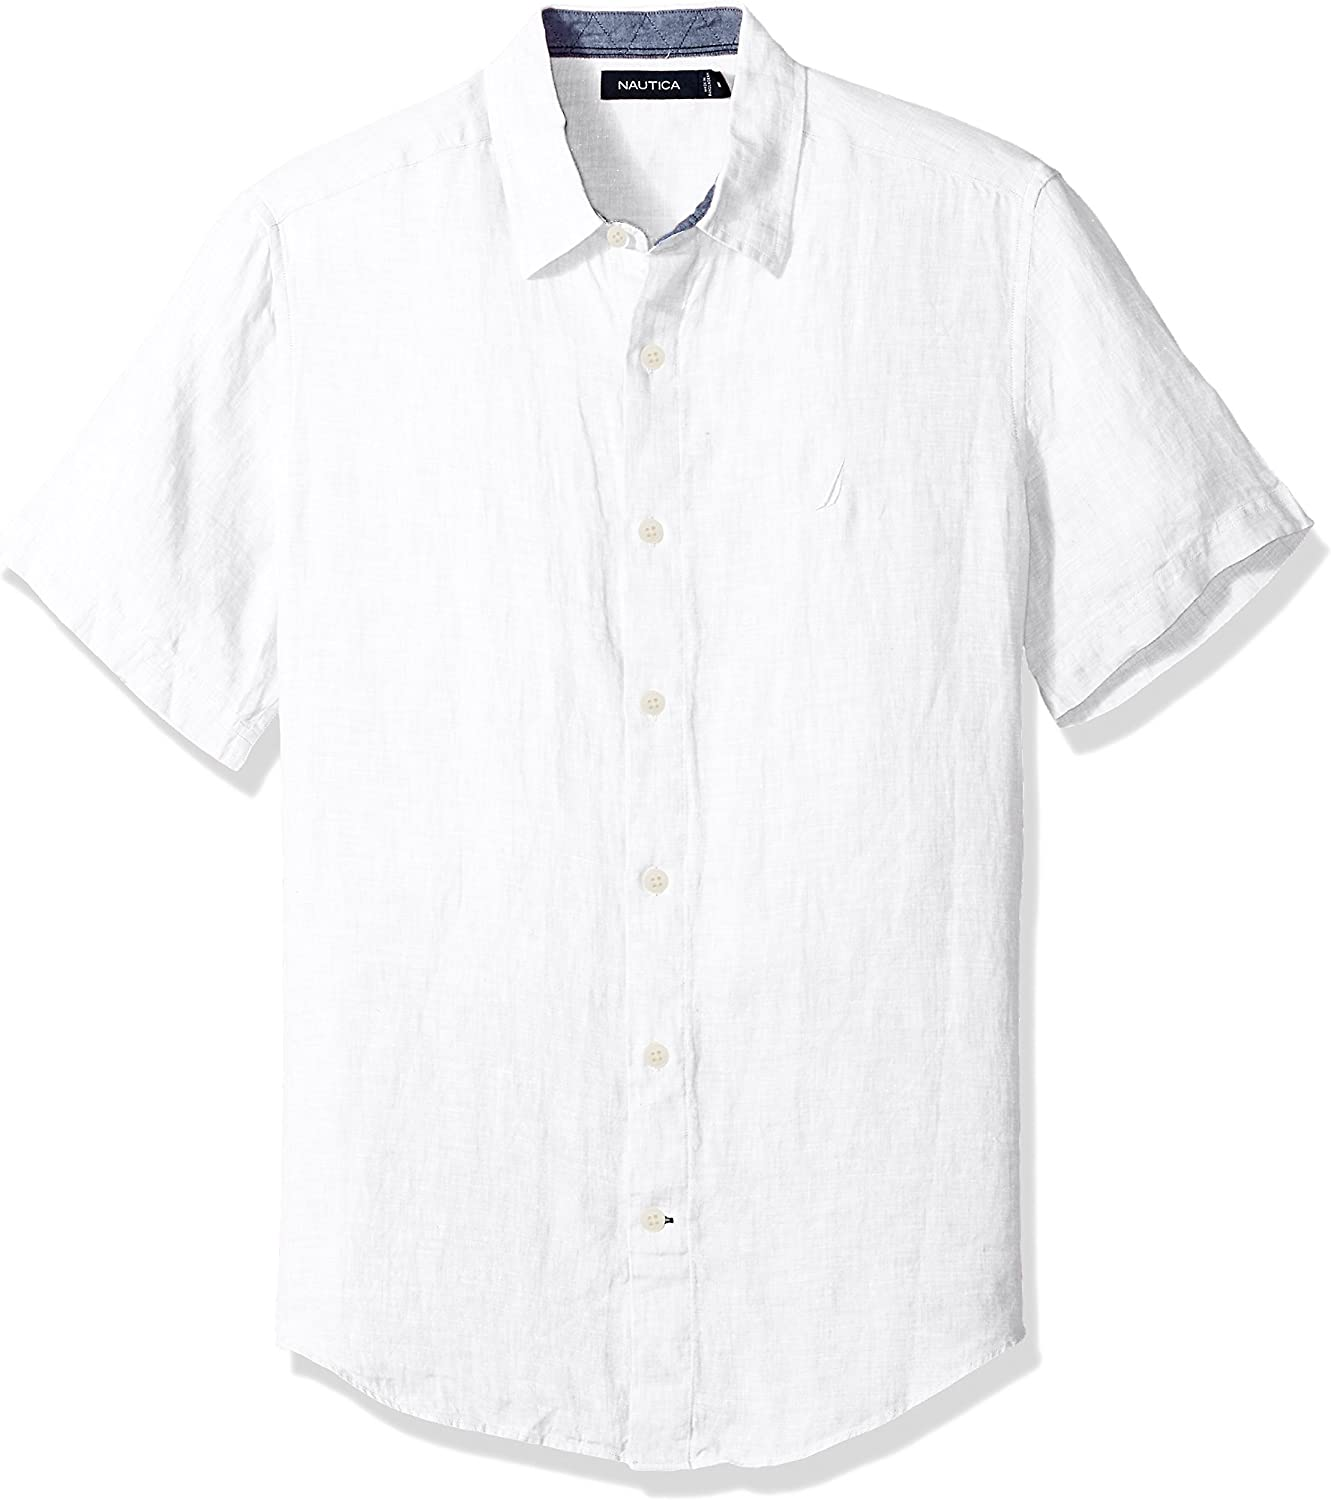 Nautica Big and Tall Short Sleeve Classic Fit Solid Linen Button Down Shirt